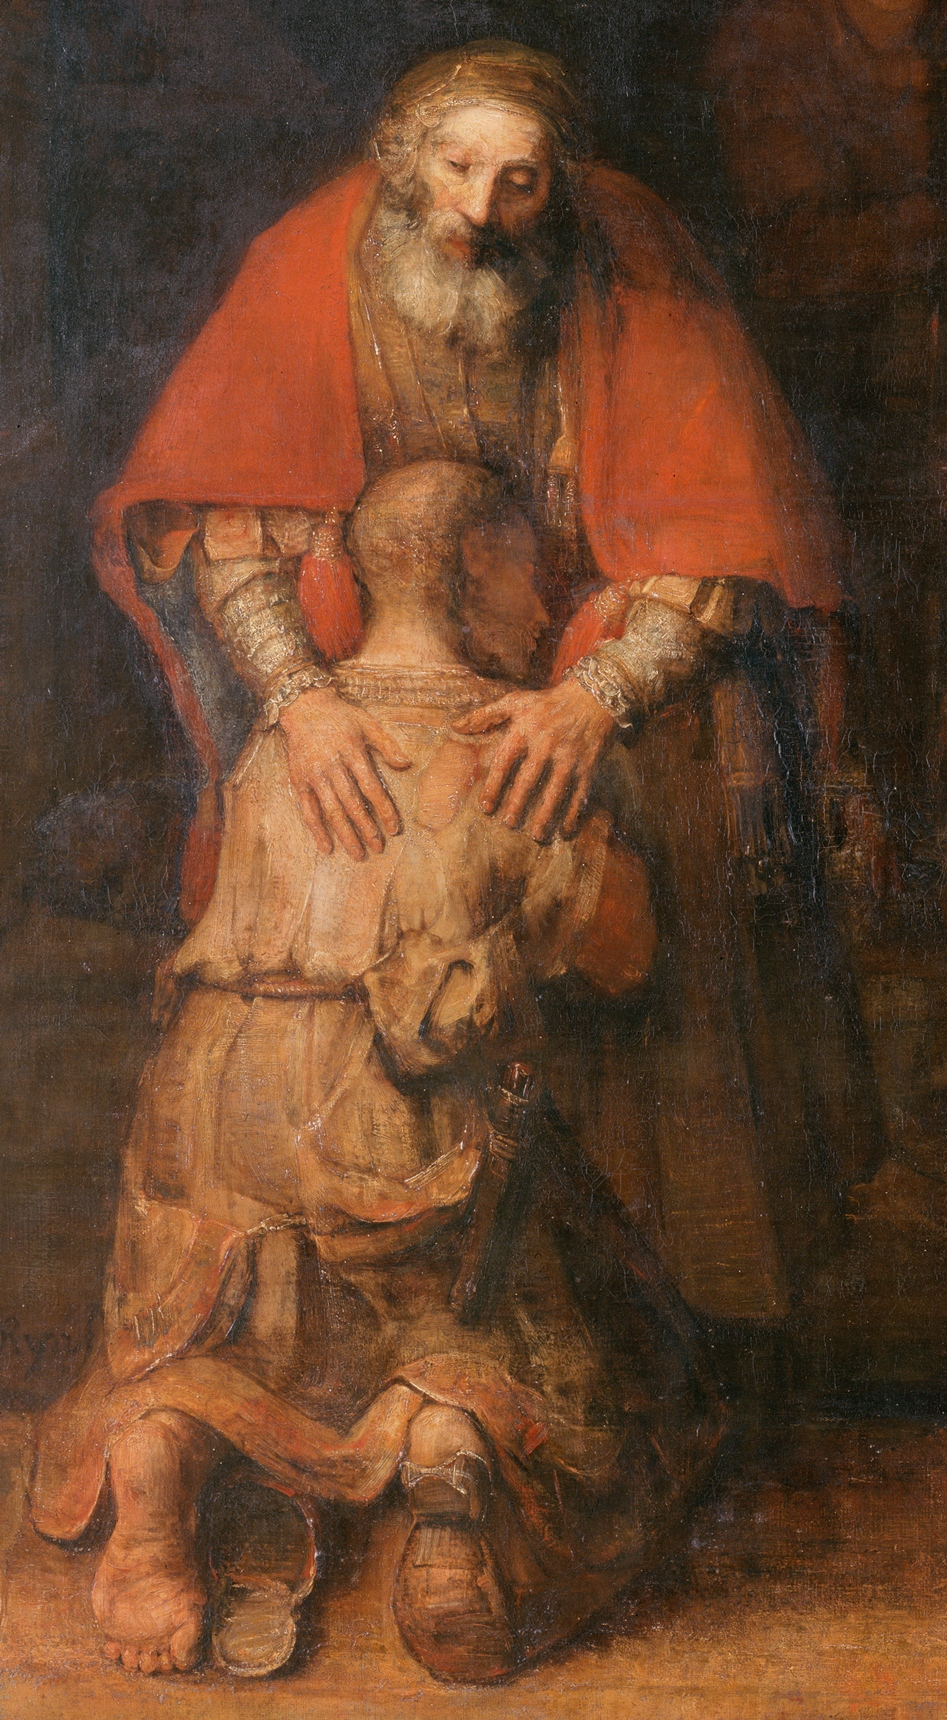 Rembrandt-The Return of the Prodigal Son, detail